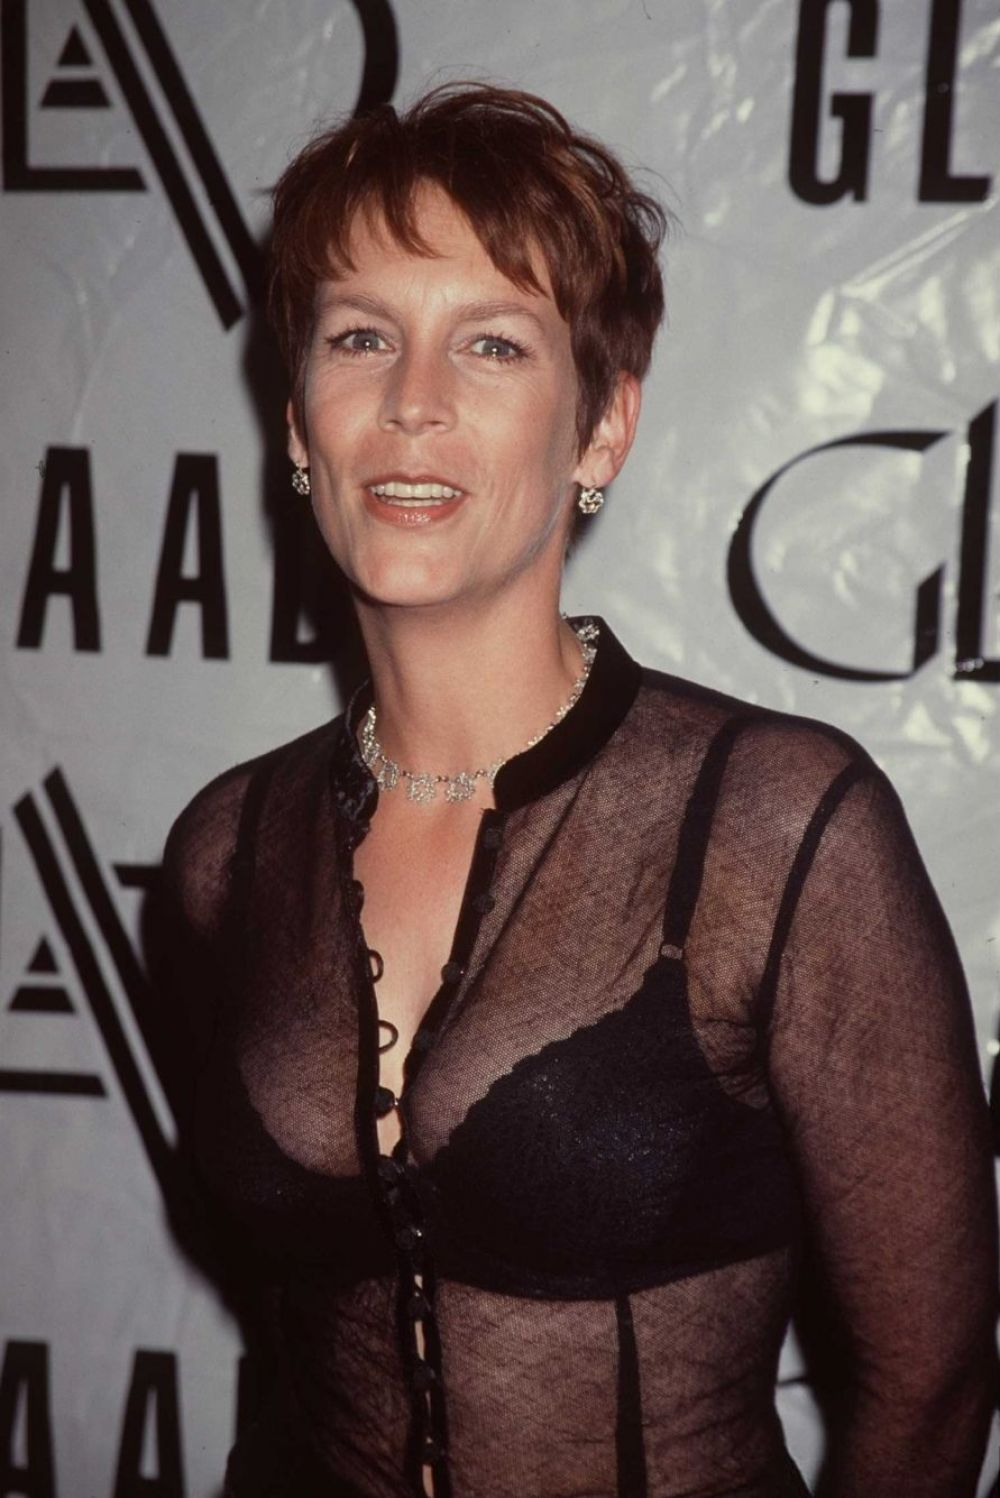 Naked Pics Of Jamie Lee Curtis